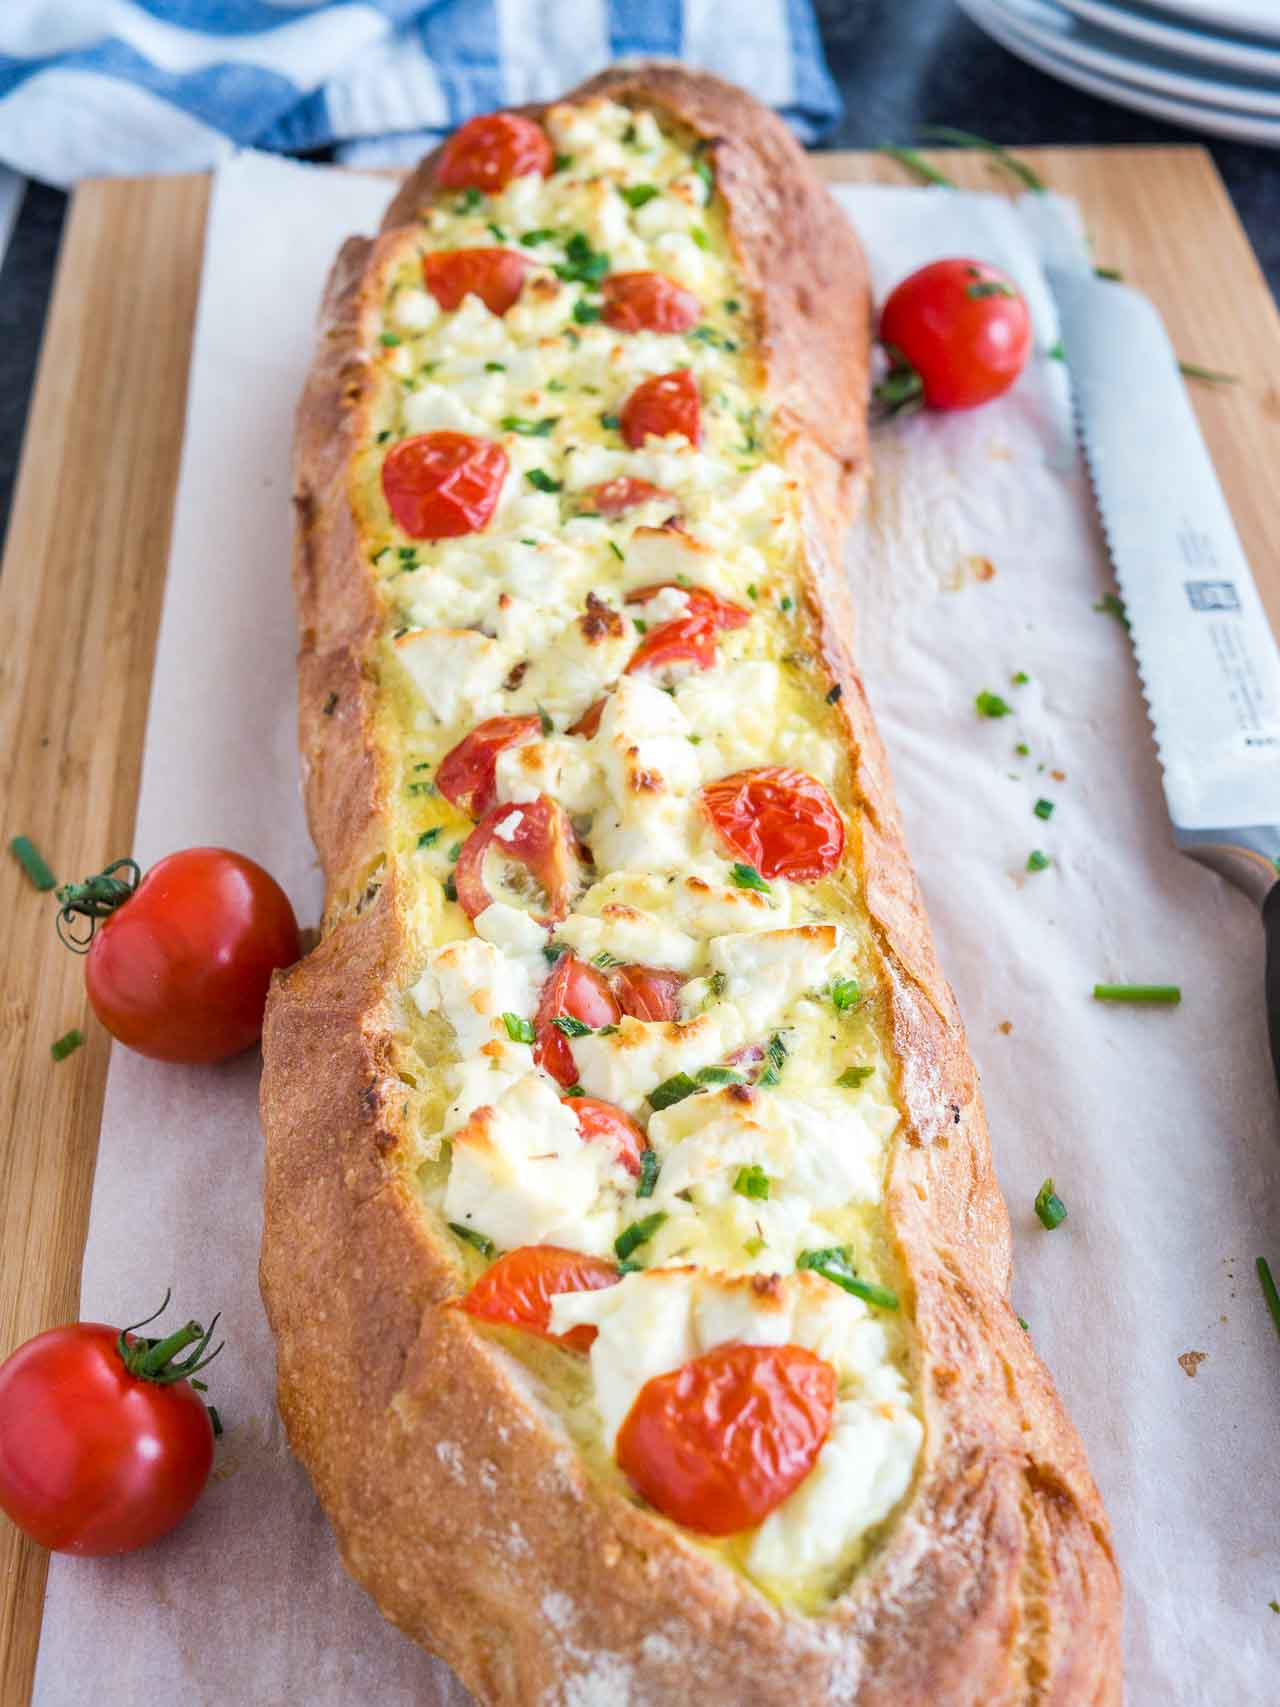 Bread Boats are a great party appetizer and super easy to make! This one is stuffed with tomatoes and feta cheese.